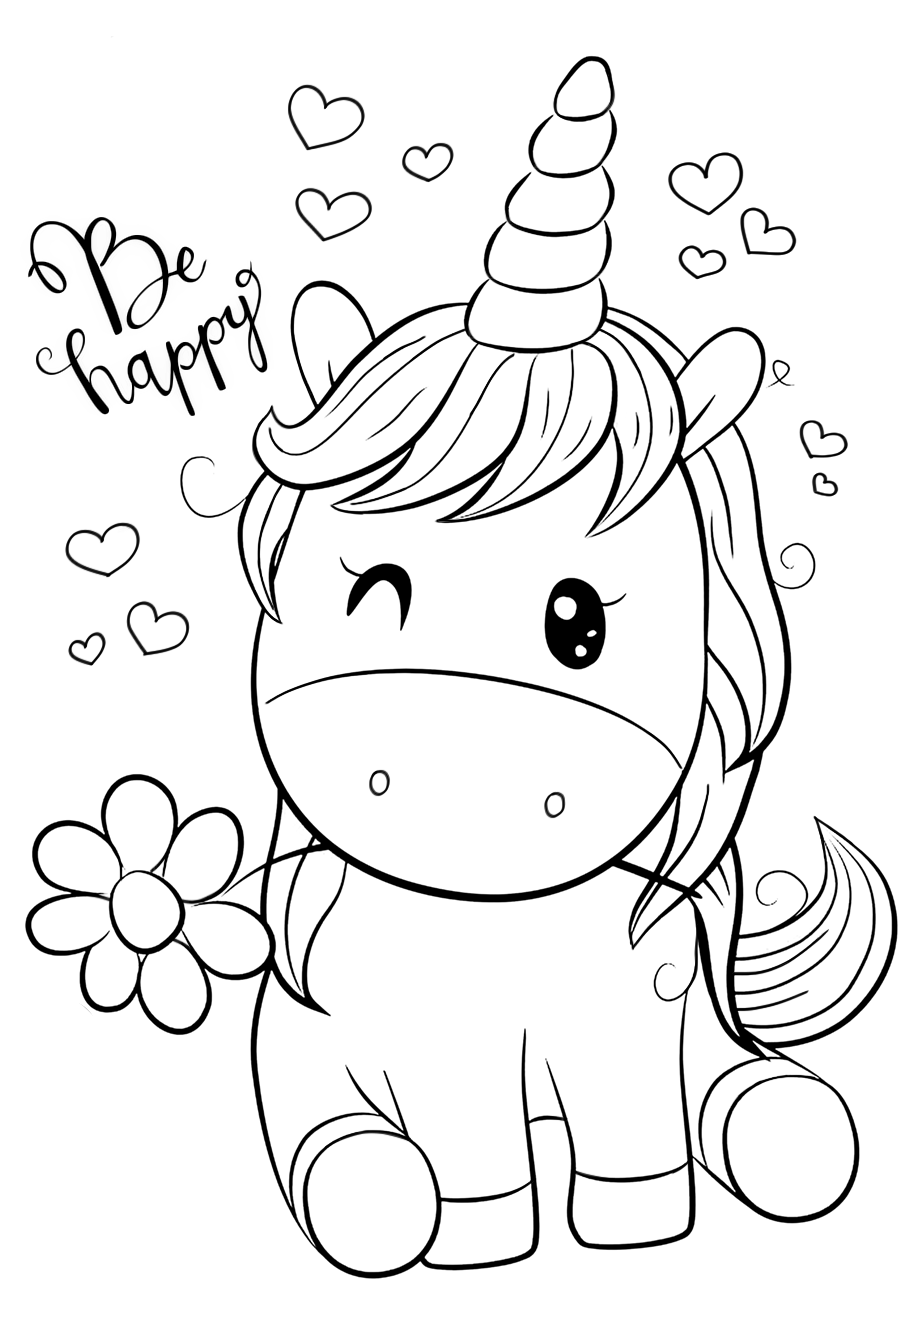 printable cute unicorn coloring pages cute unicorn coloring pages for you printable pages cute coloring unicorn